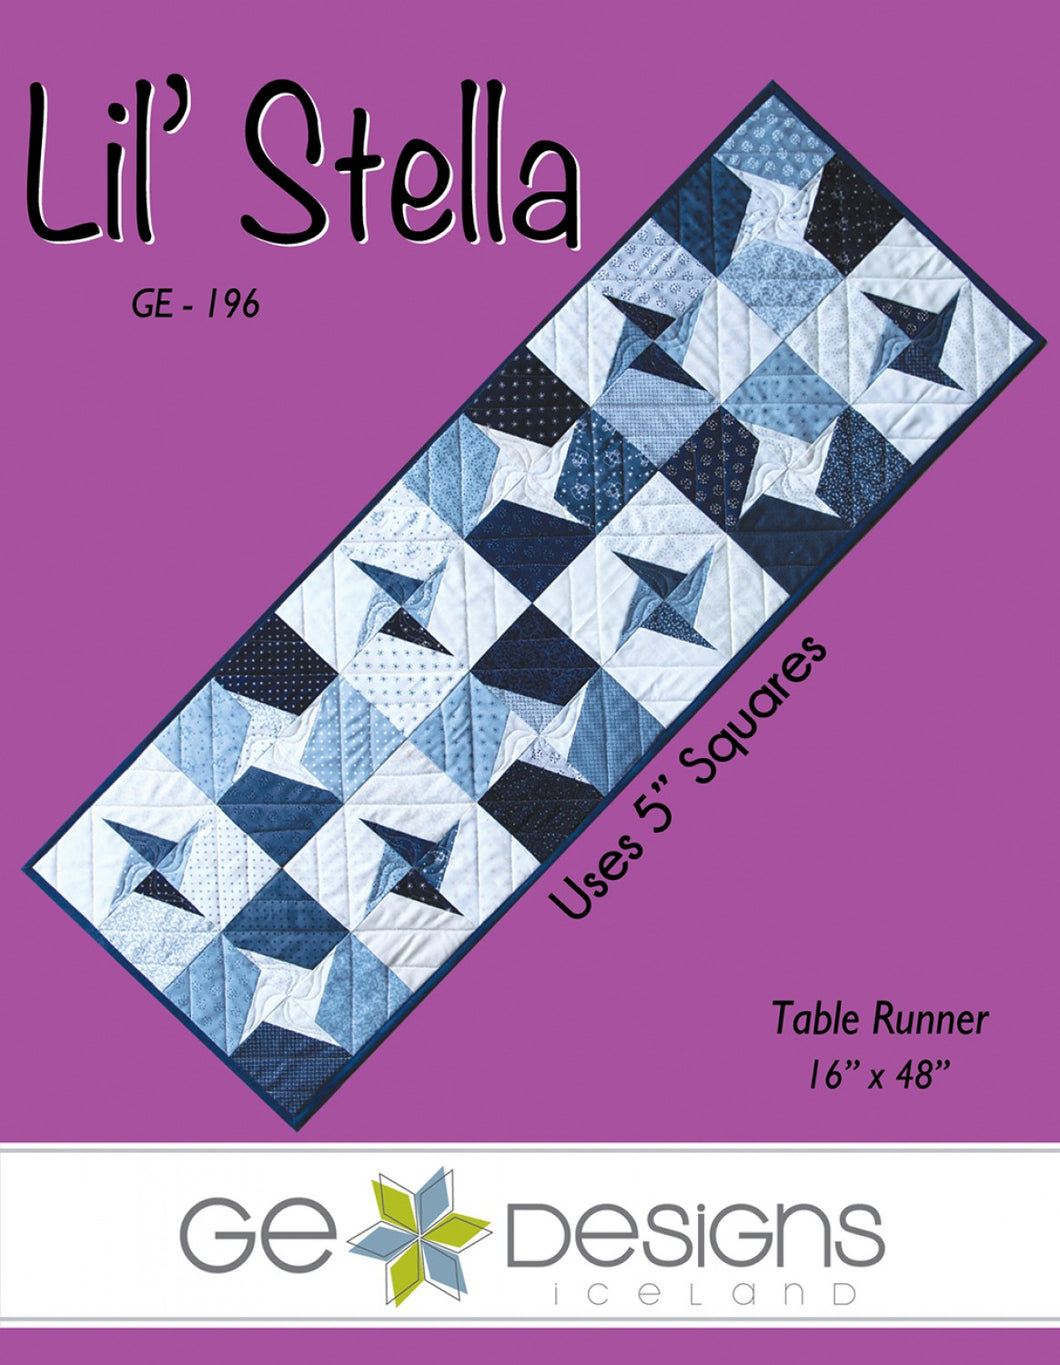 G. E. Designs: Lil Stella Table Runner Pattern